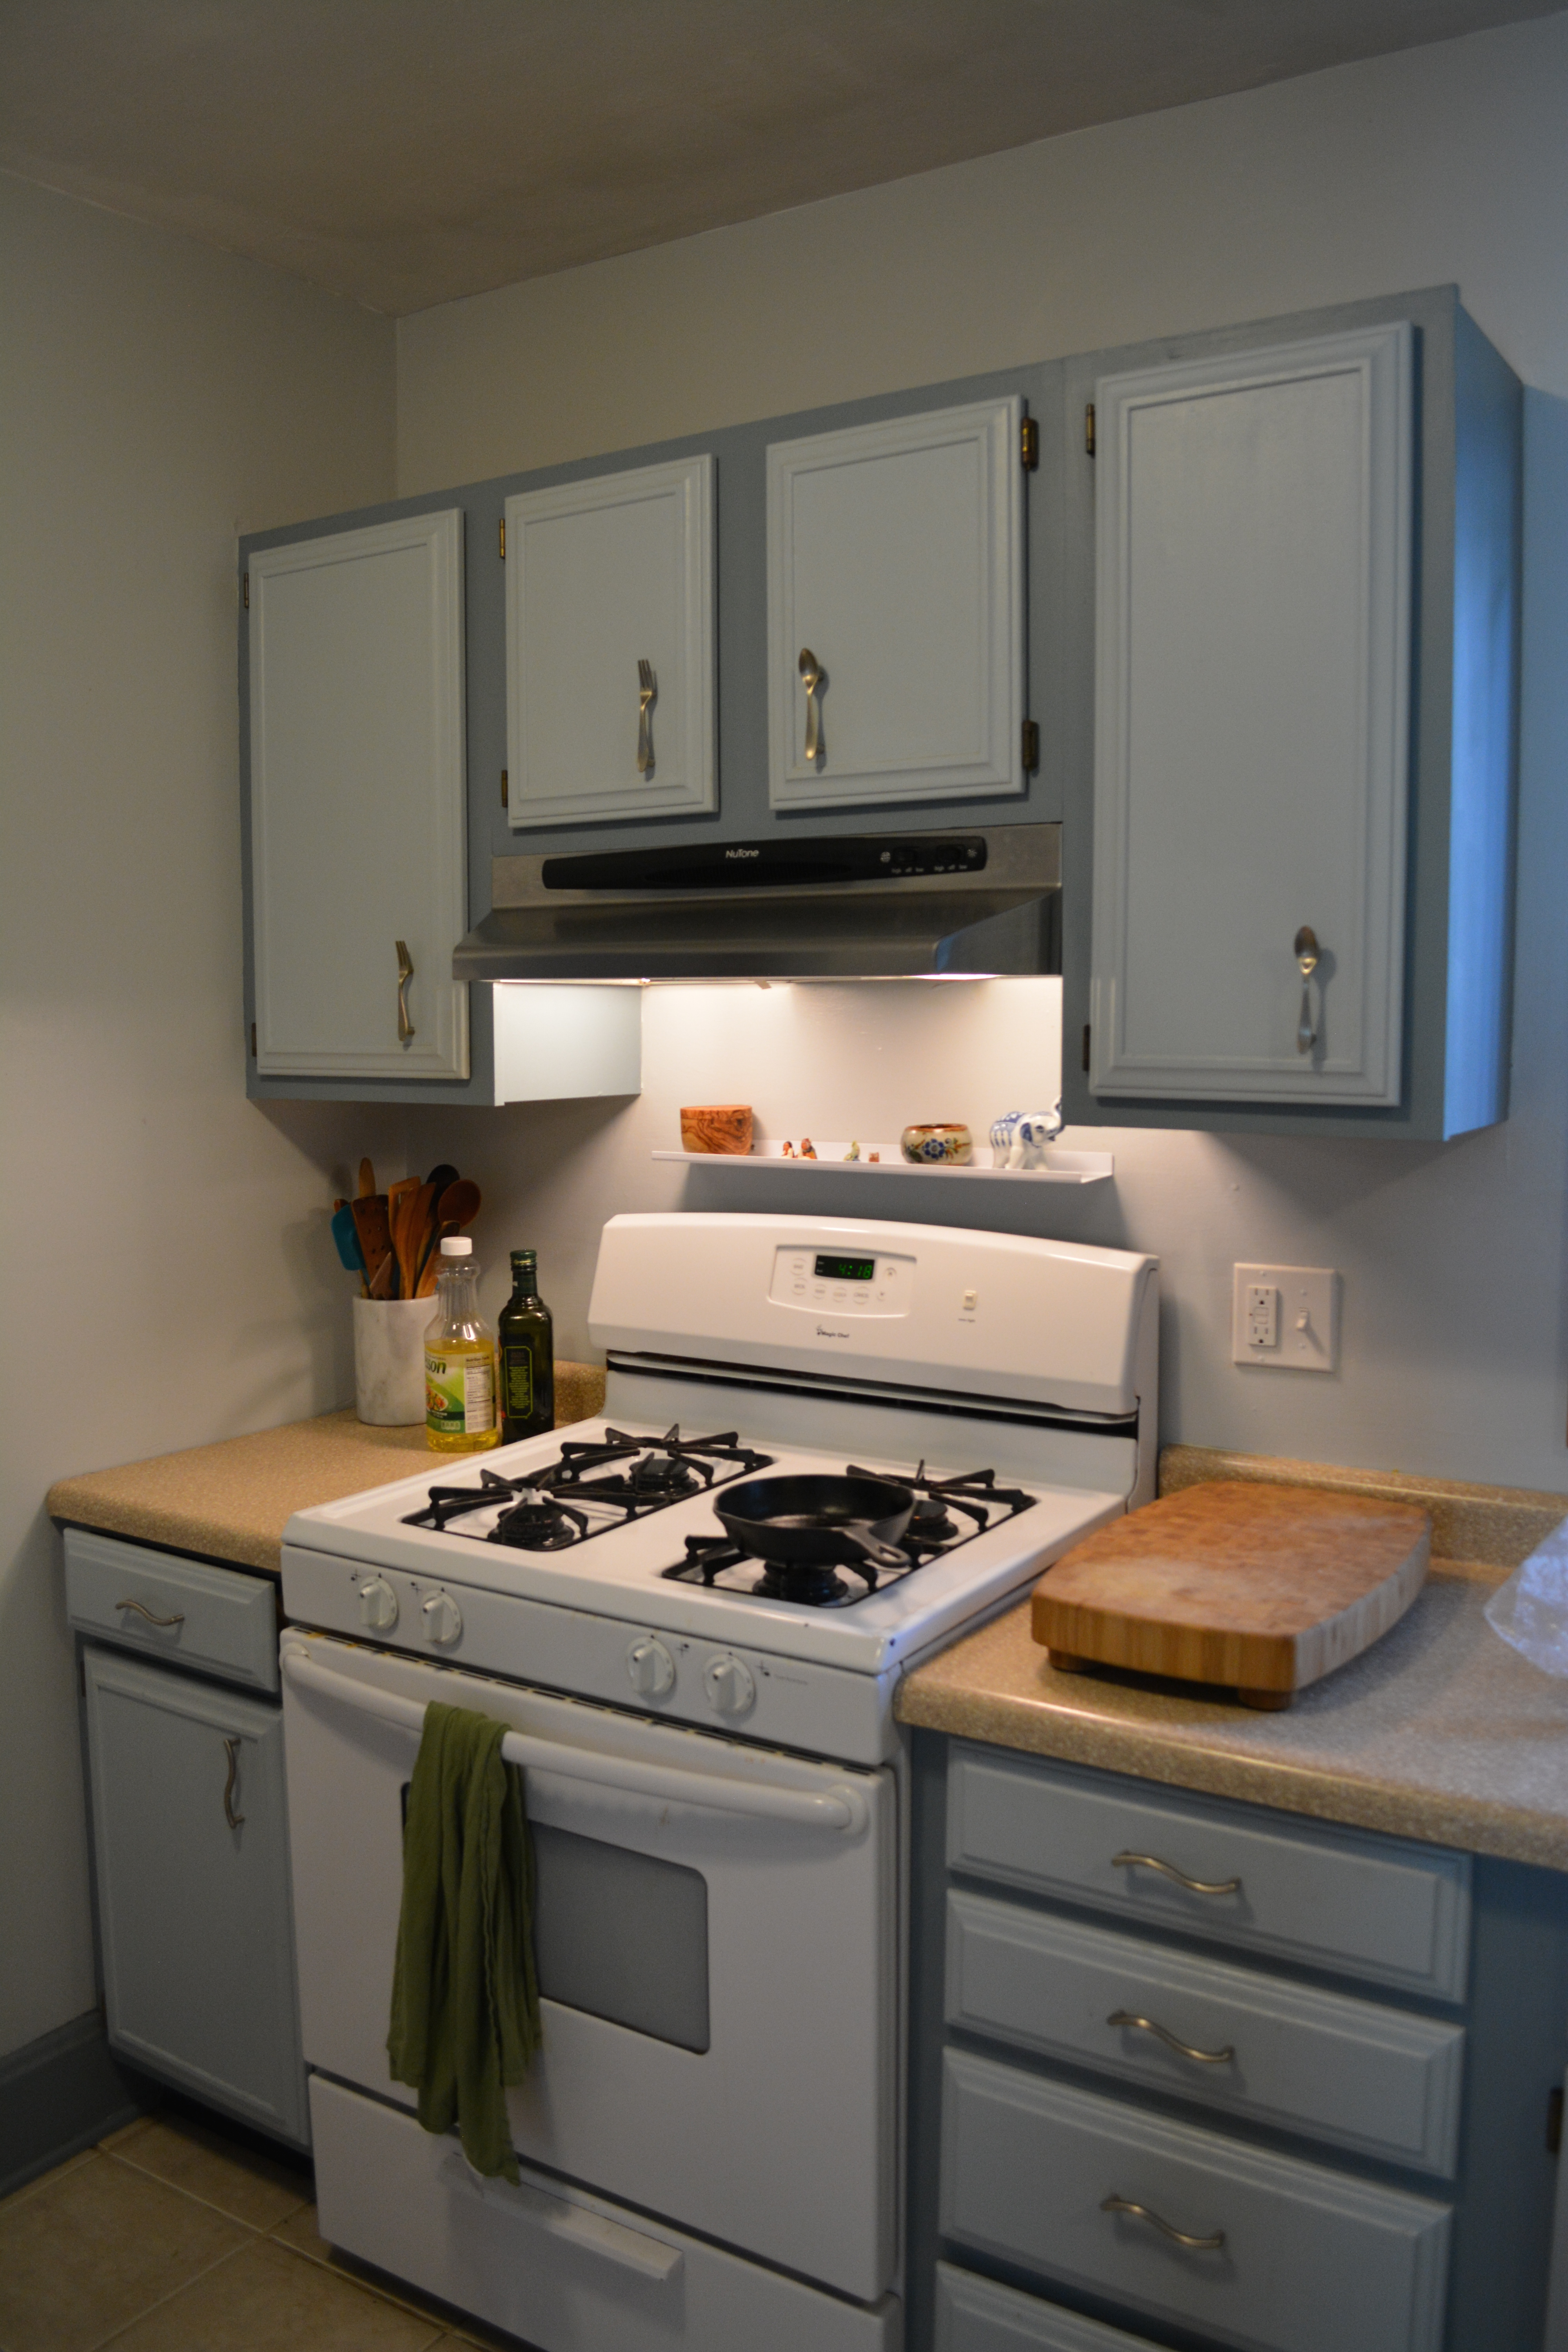 Kitchen Cabinets Doors look you can choose any cabinet door color or stain color you